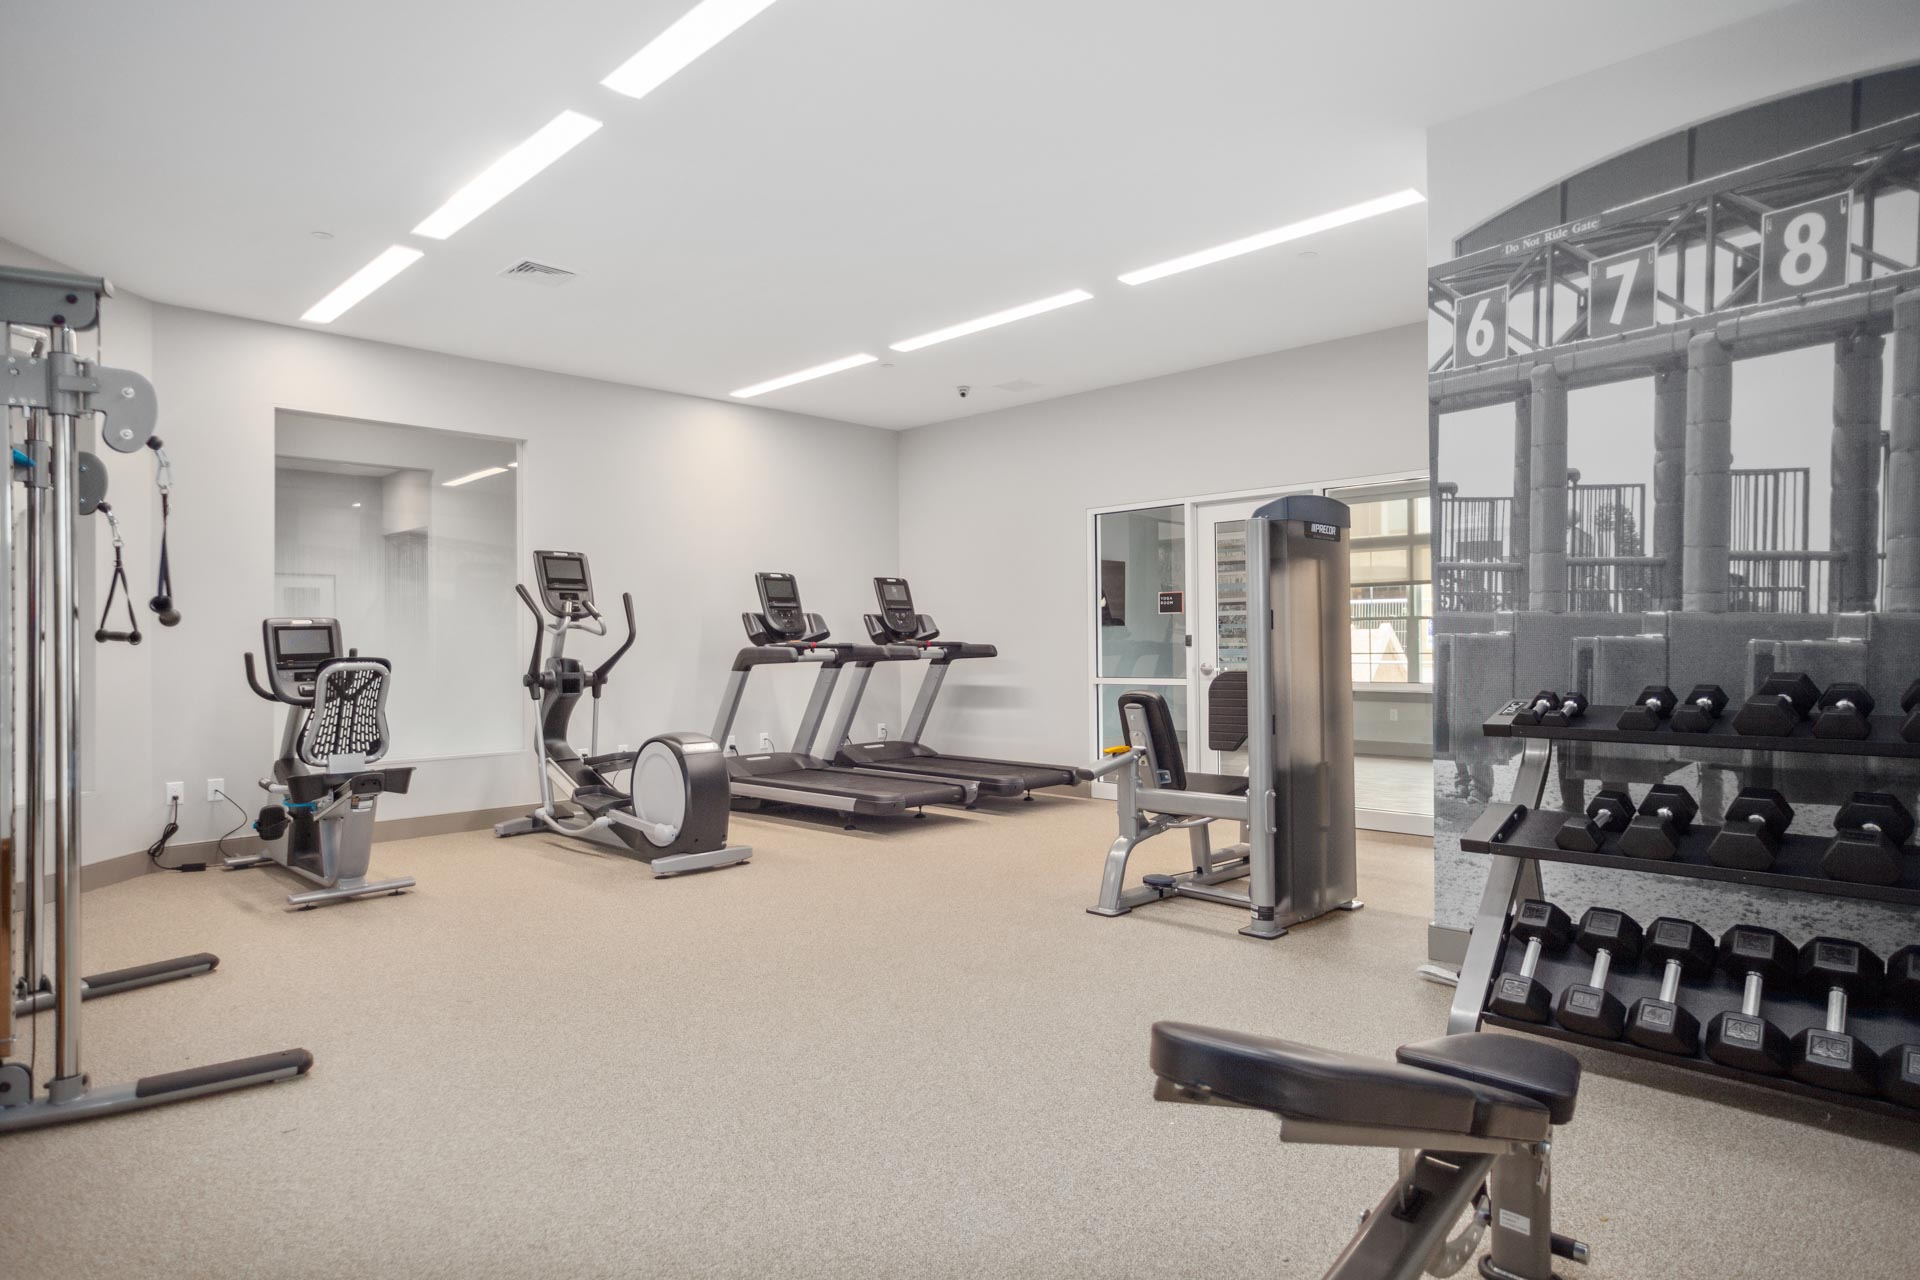 The resident fitness center inside the Corsa Apartments in Salem, New Hampshire